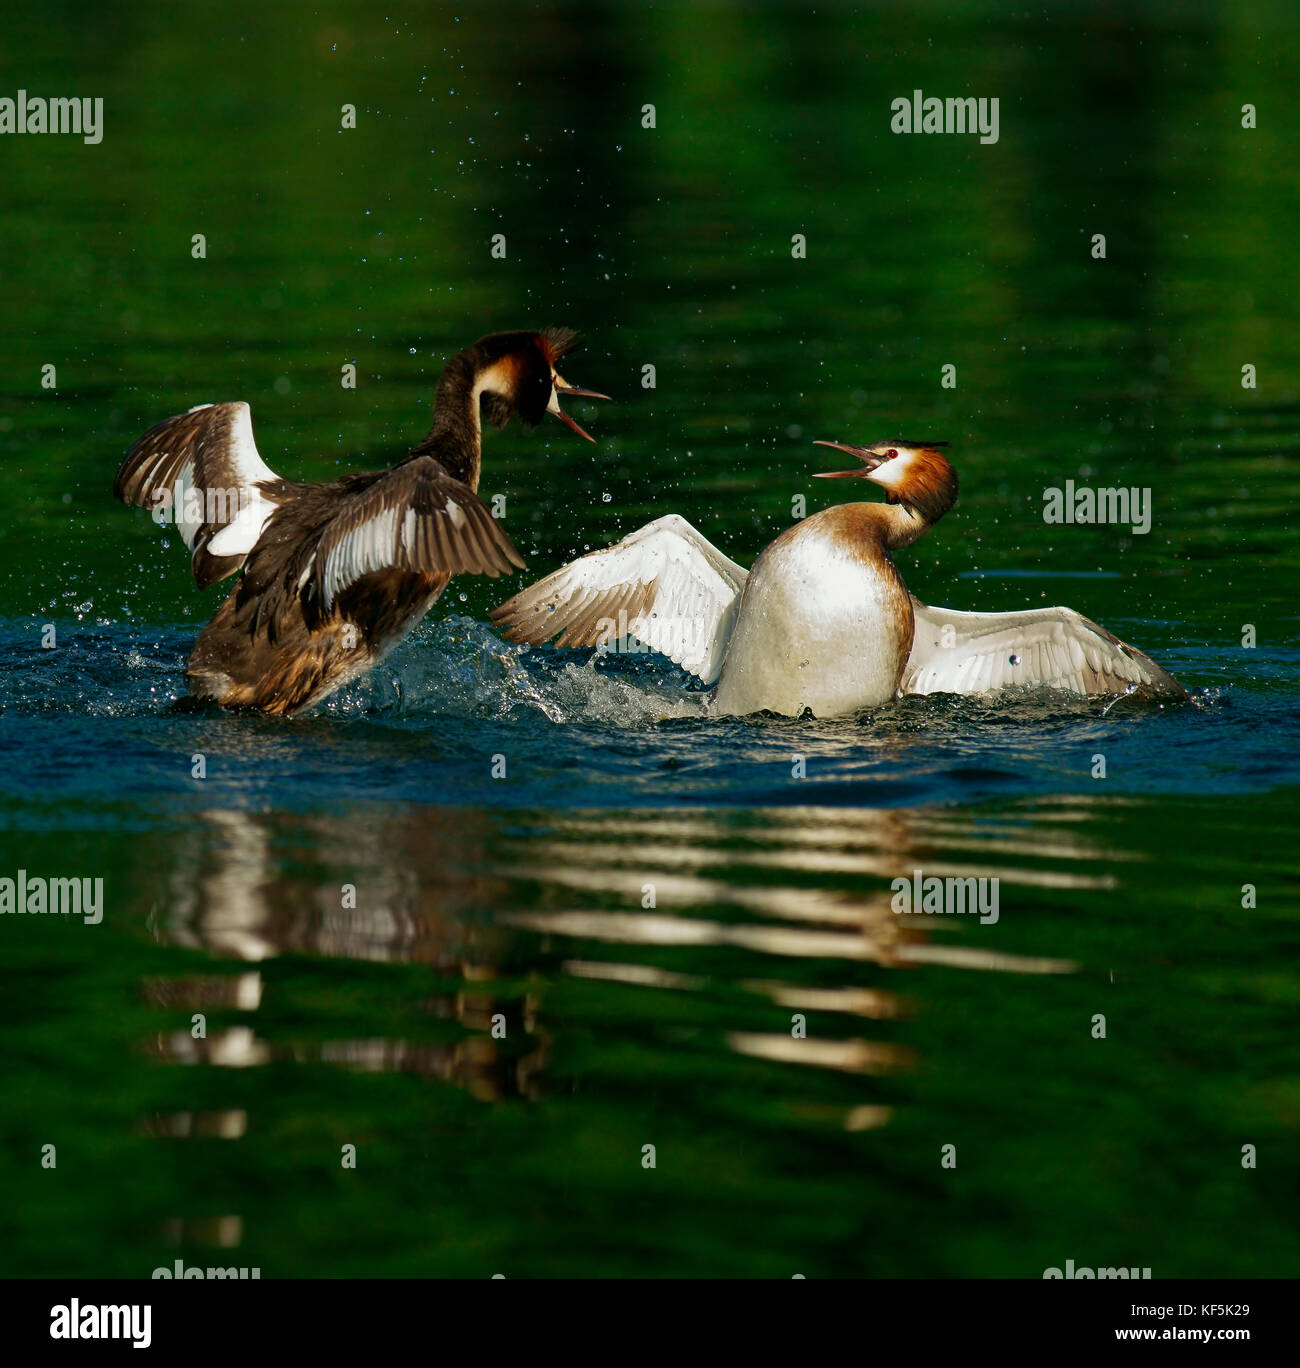 Great crested grebes (Podiceps cristatus), district combat, Feldberger Seenlandschaft, Mecklenburg-Western Pomerania, - Stock Image